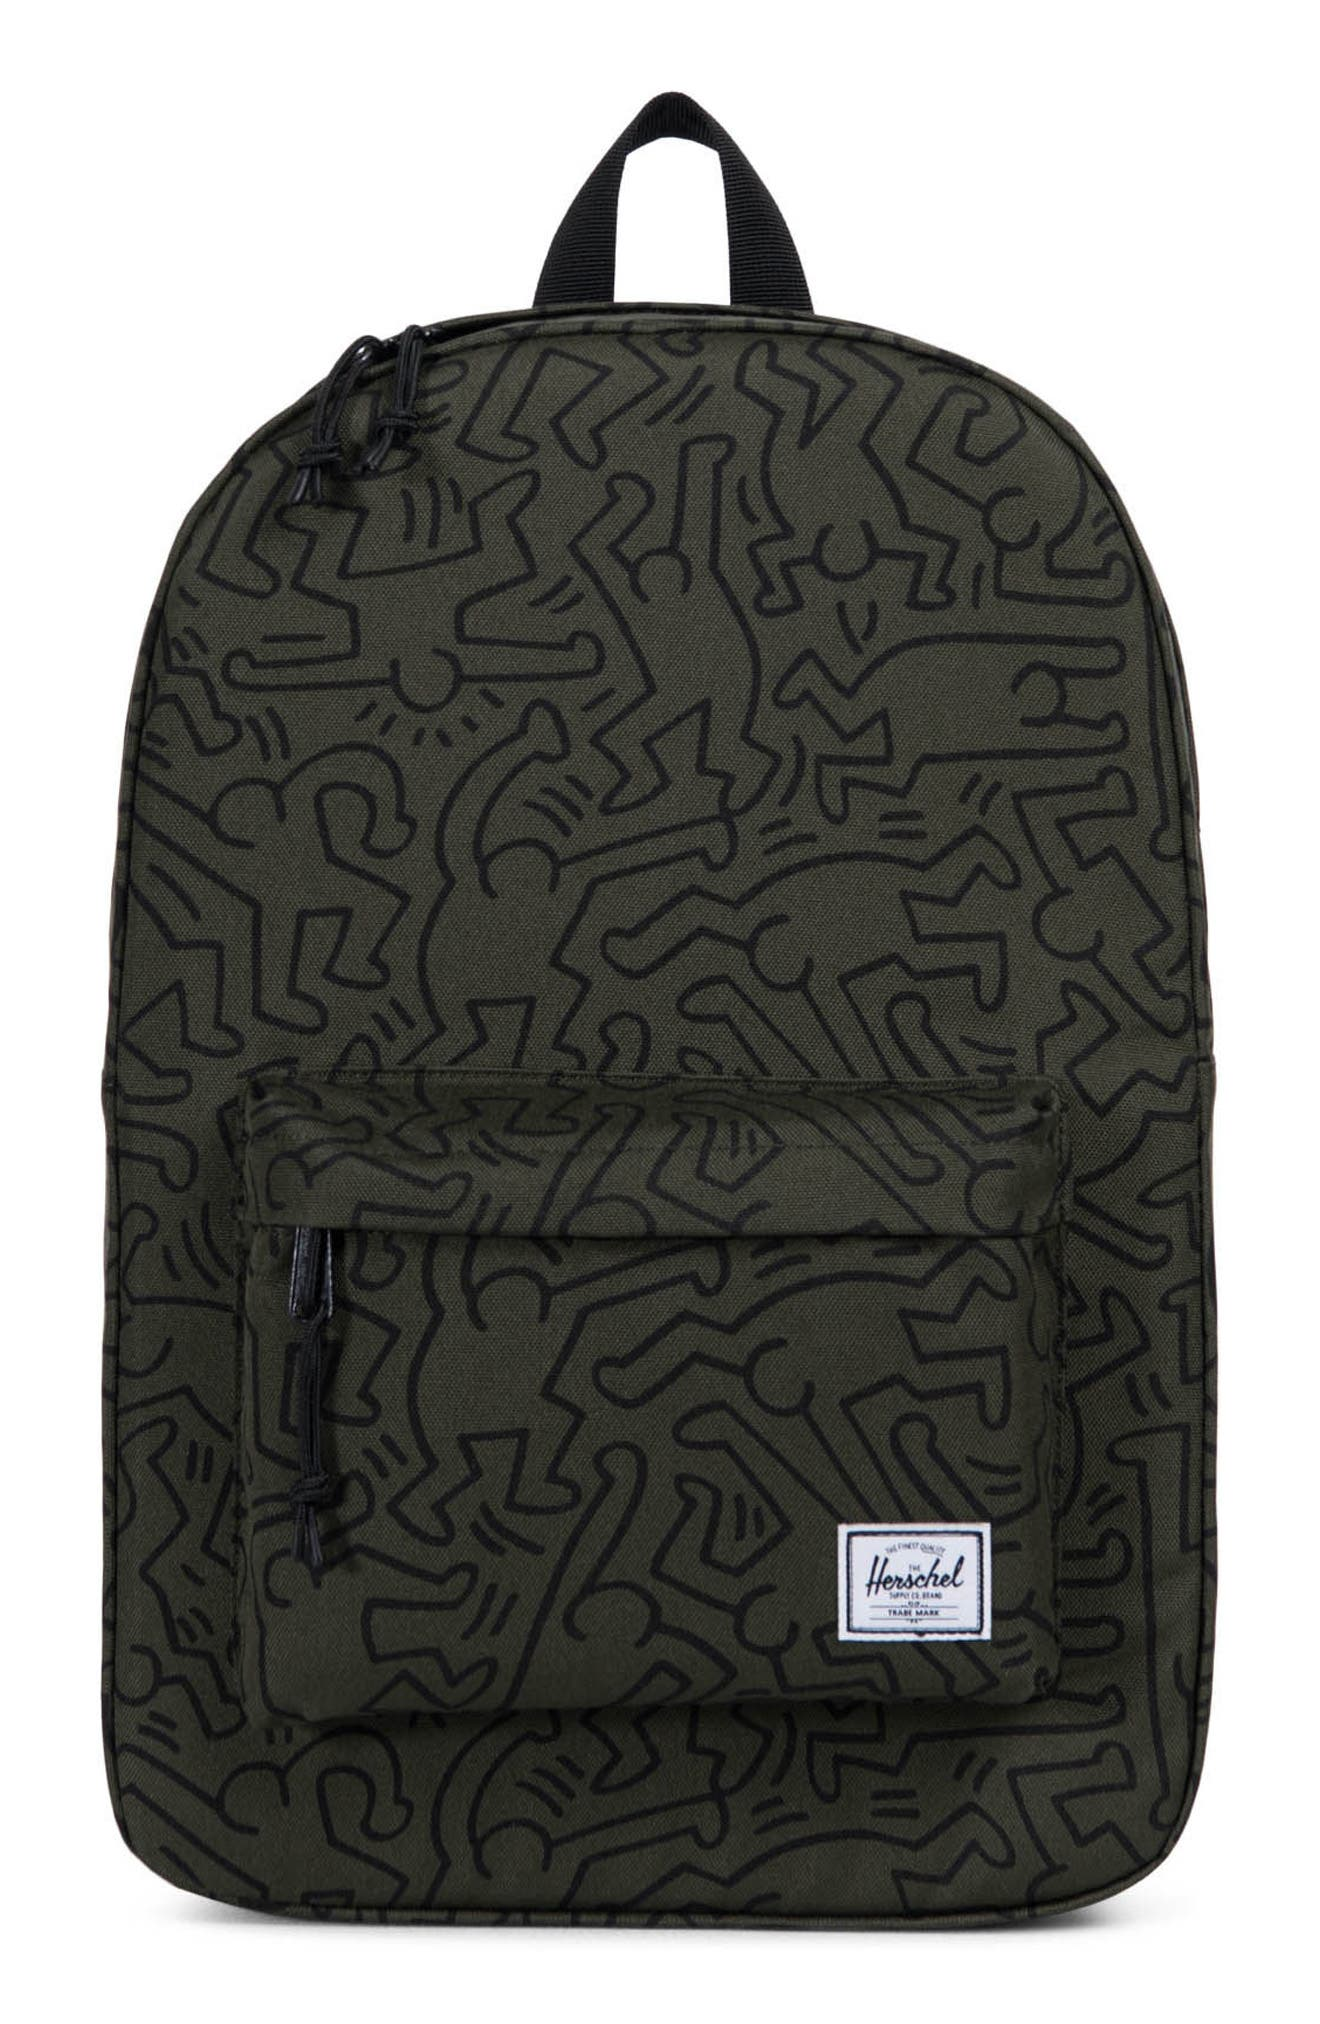 Winlaw x Keith Haring Backpack,                             Alternate thumbnail 5, color,